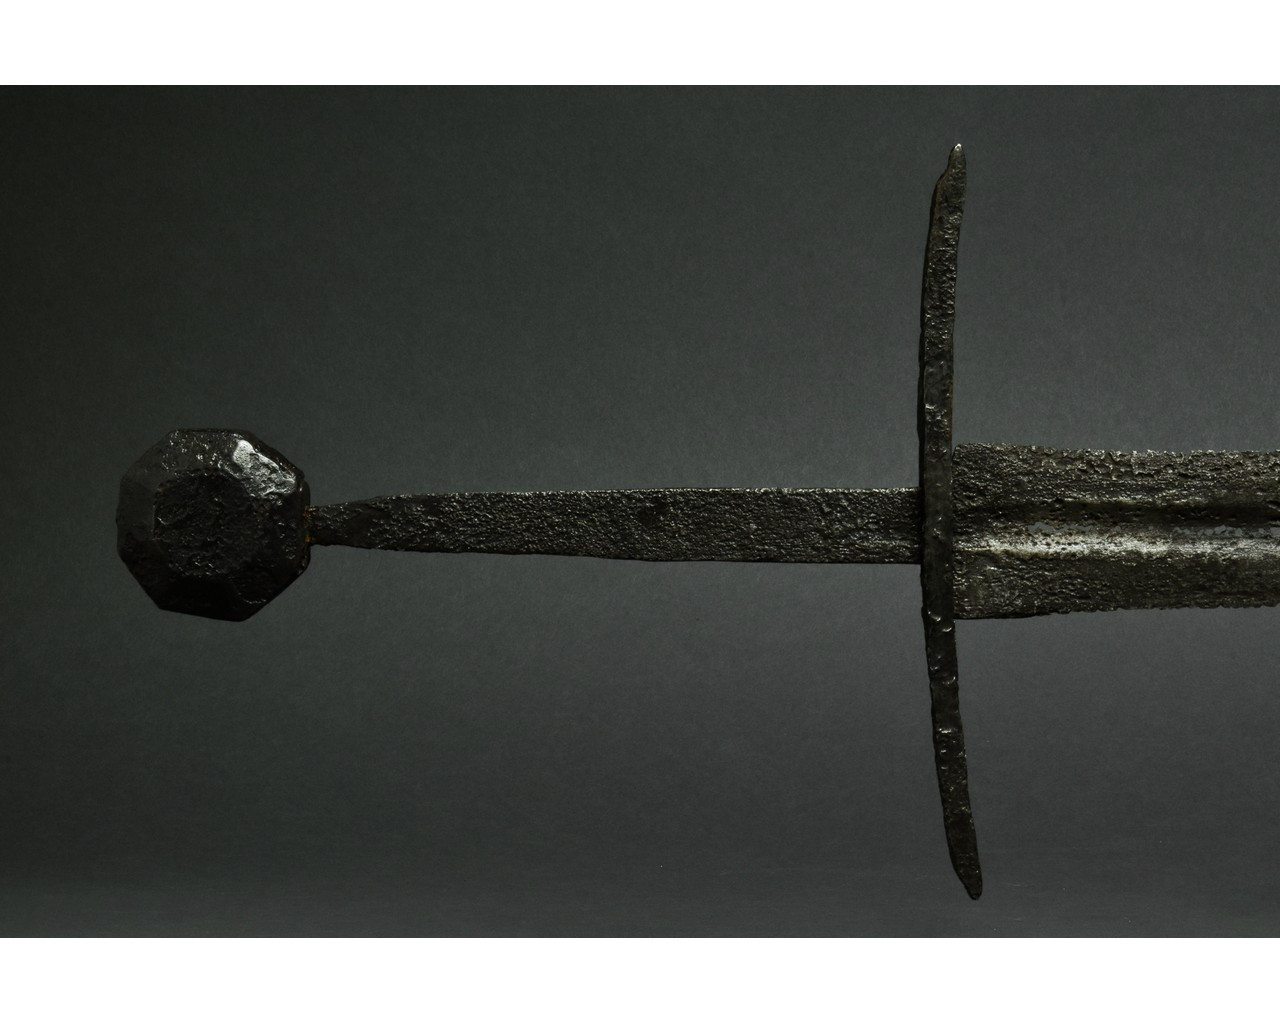 MEDIEVAL IRON SWORD WITH HANDLE - Image 4 of 5